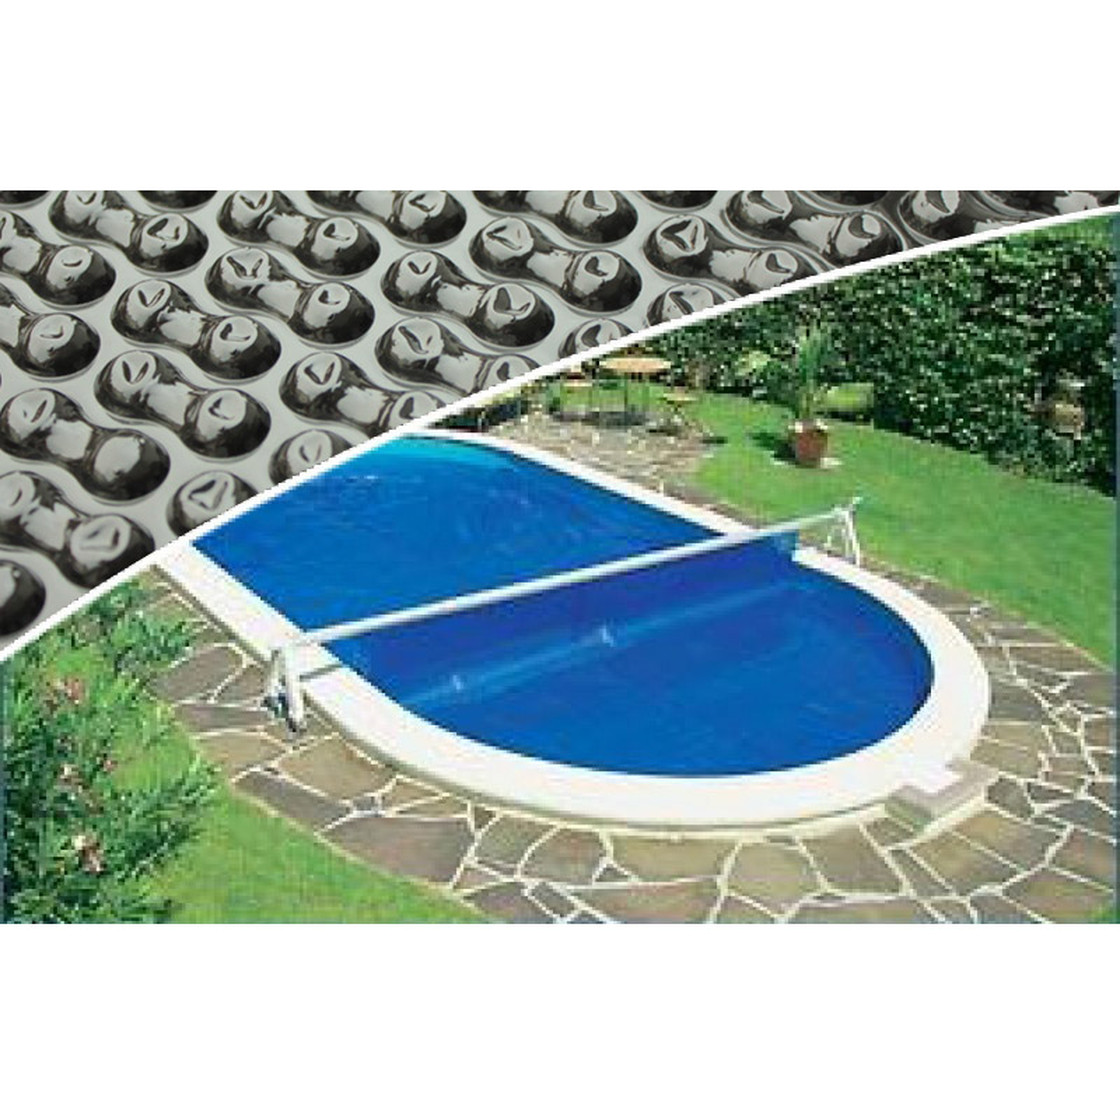 Pool Solarfolie 500 My Sol Guard Geobubble Solarfolie Pool Bewertung